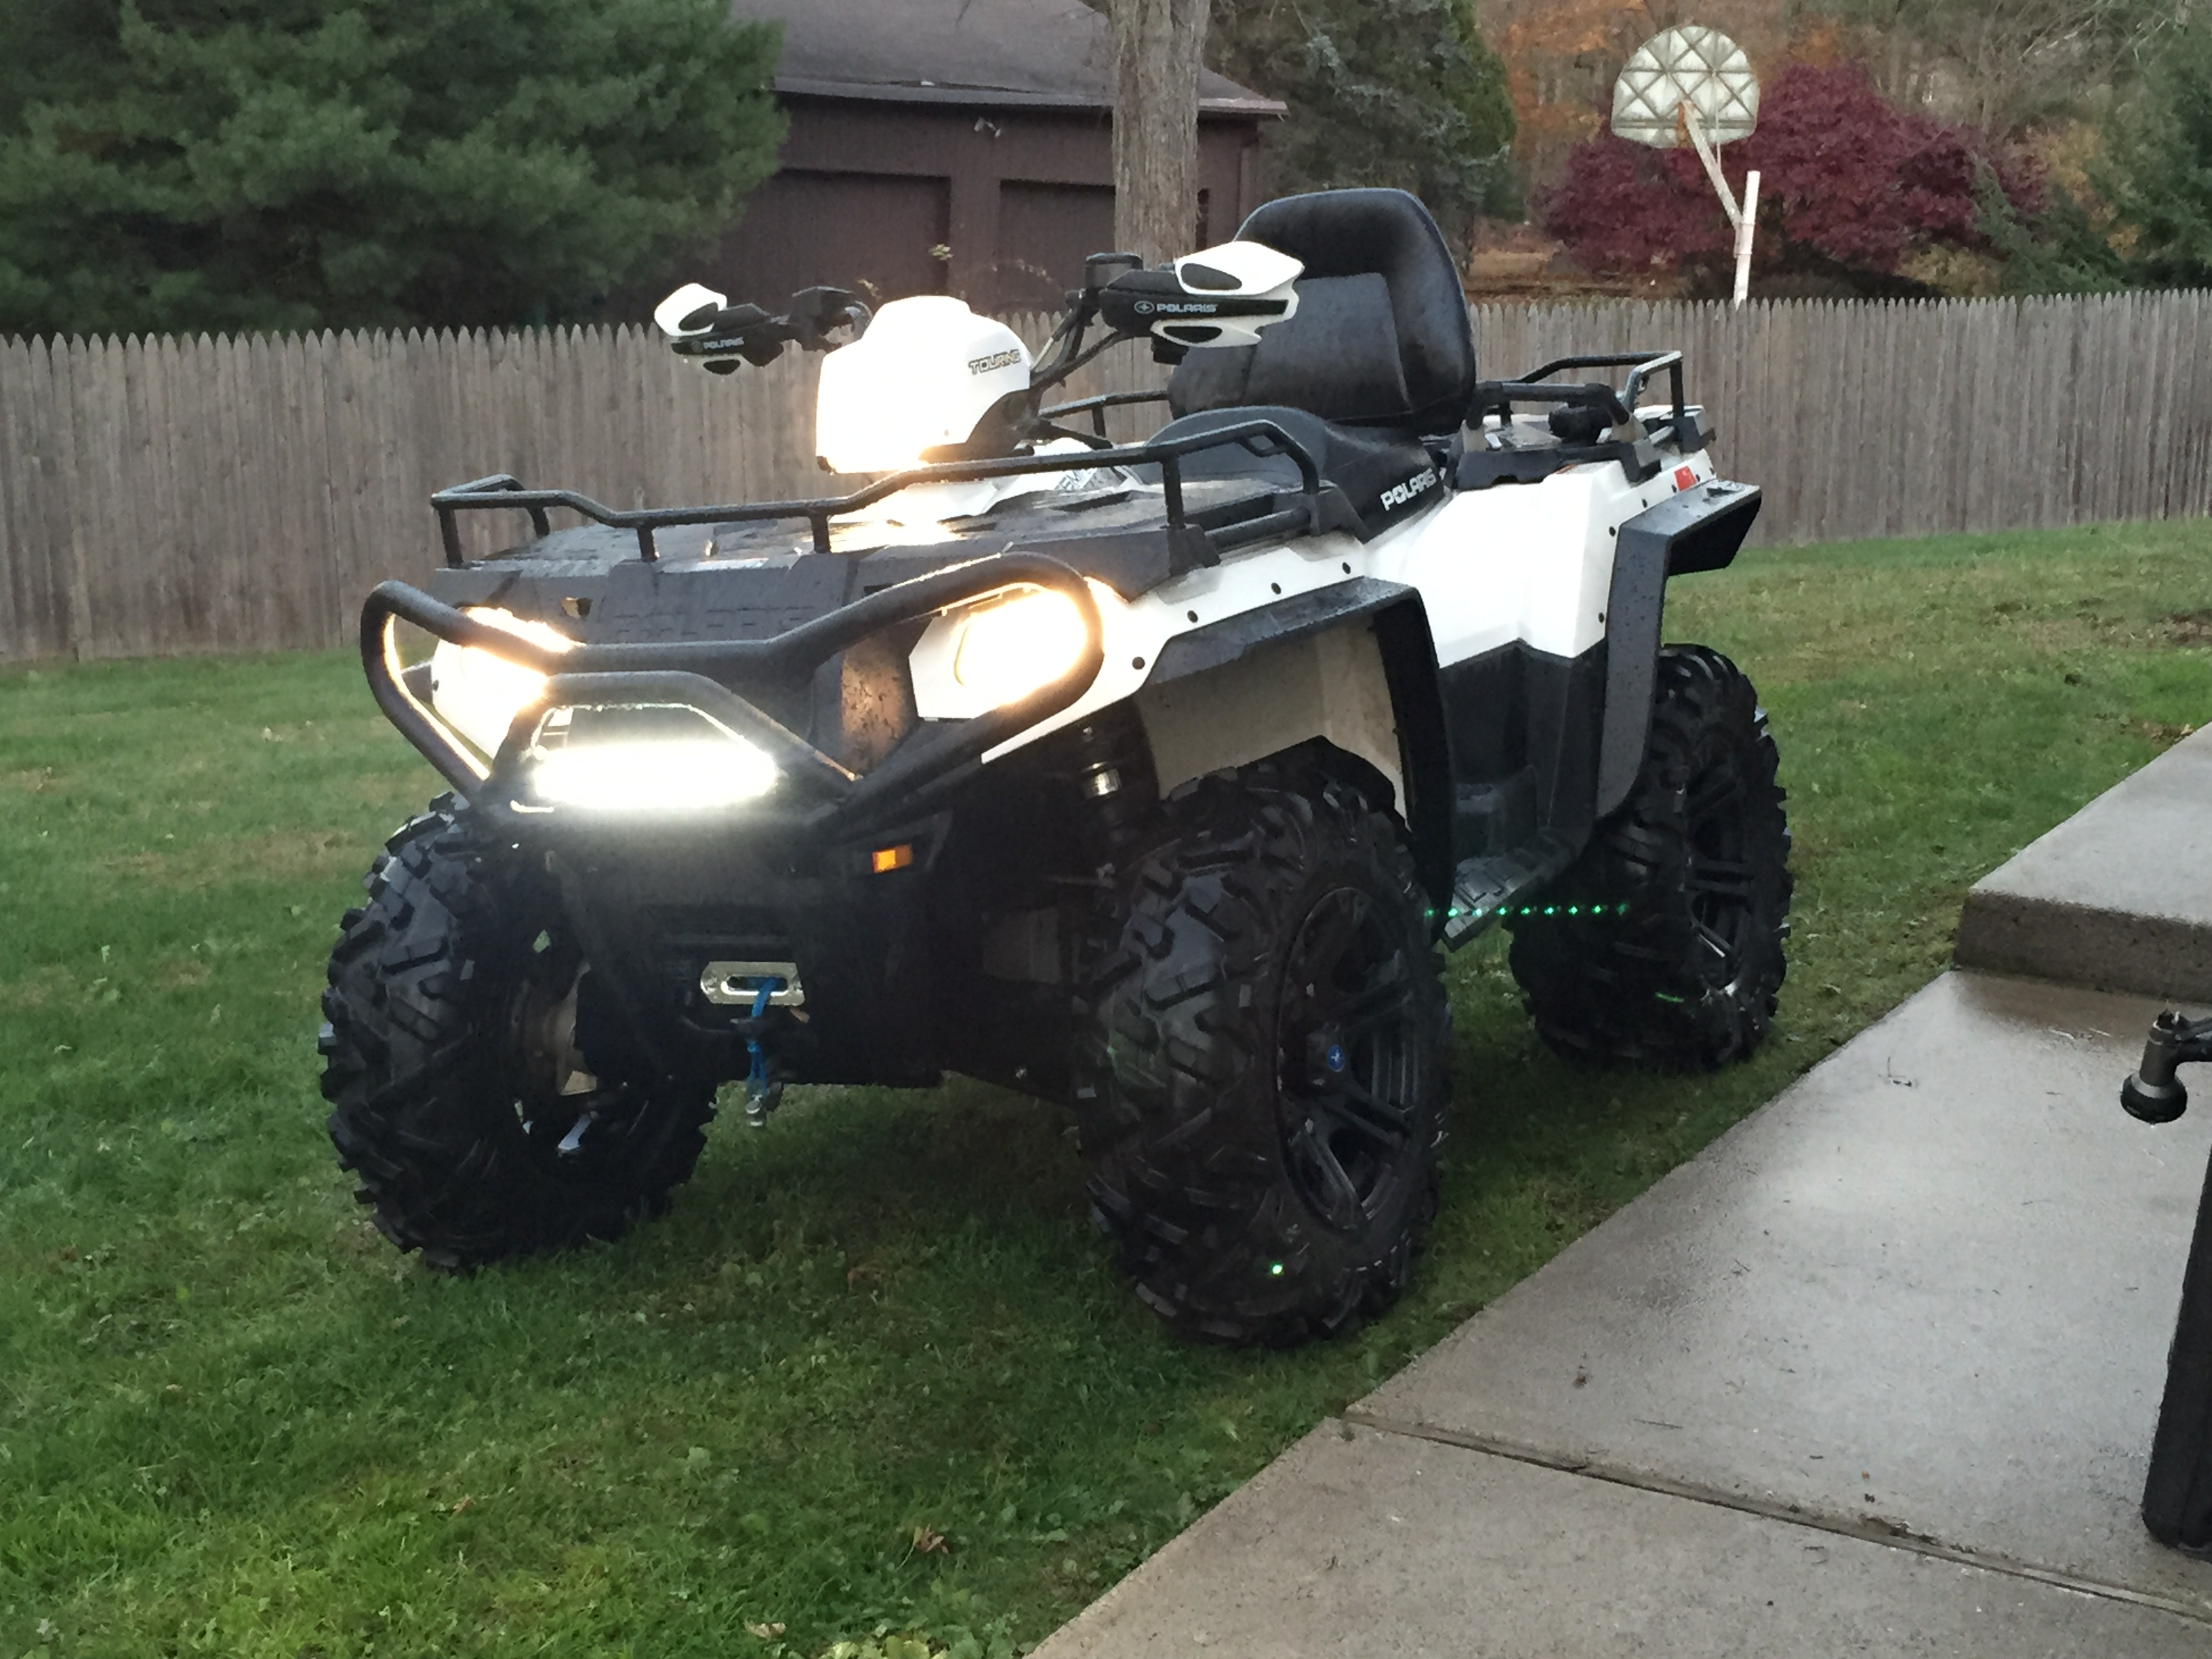 Sportsman 570 Overfenders Installed Pics Polaris Atv Forum